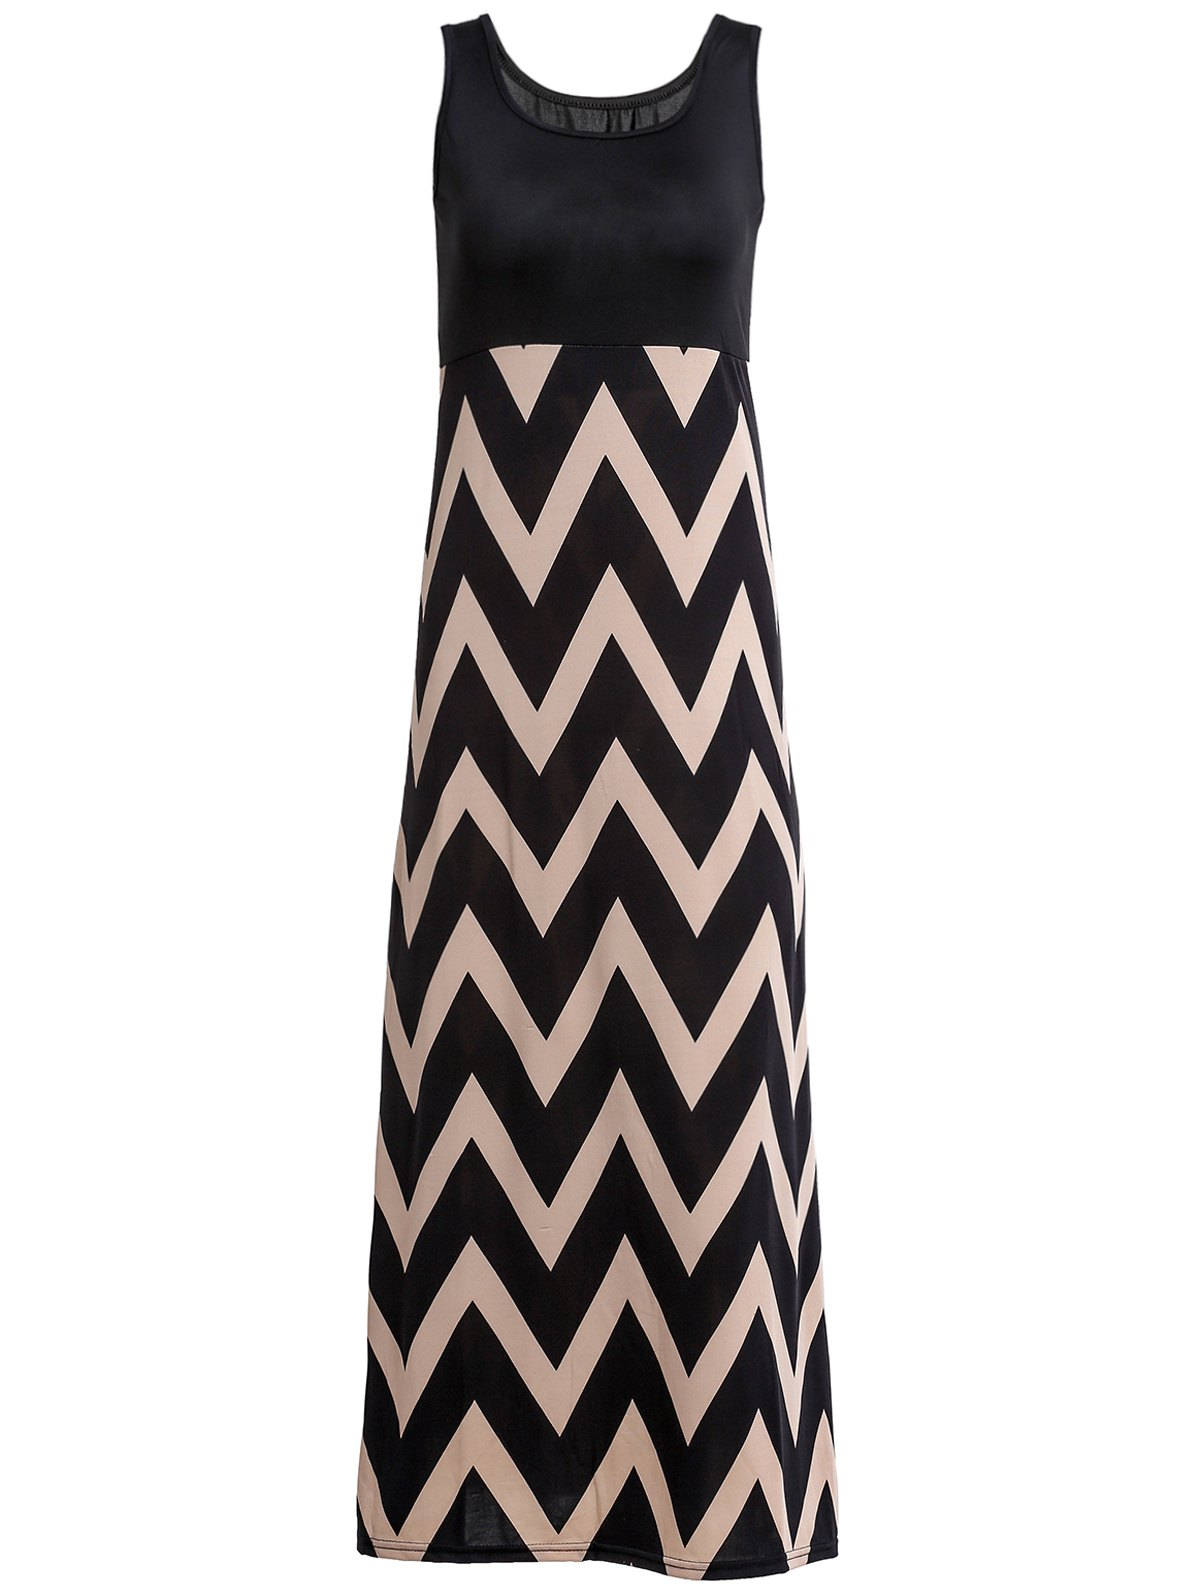 Stylish Women's Scoop Neck Sleeveless Zig Zag Maxi Dress